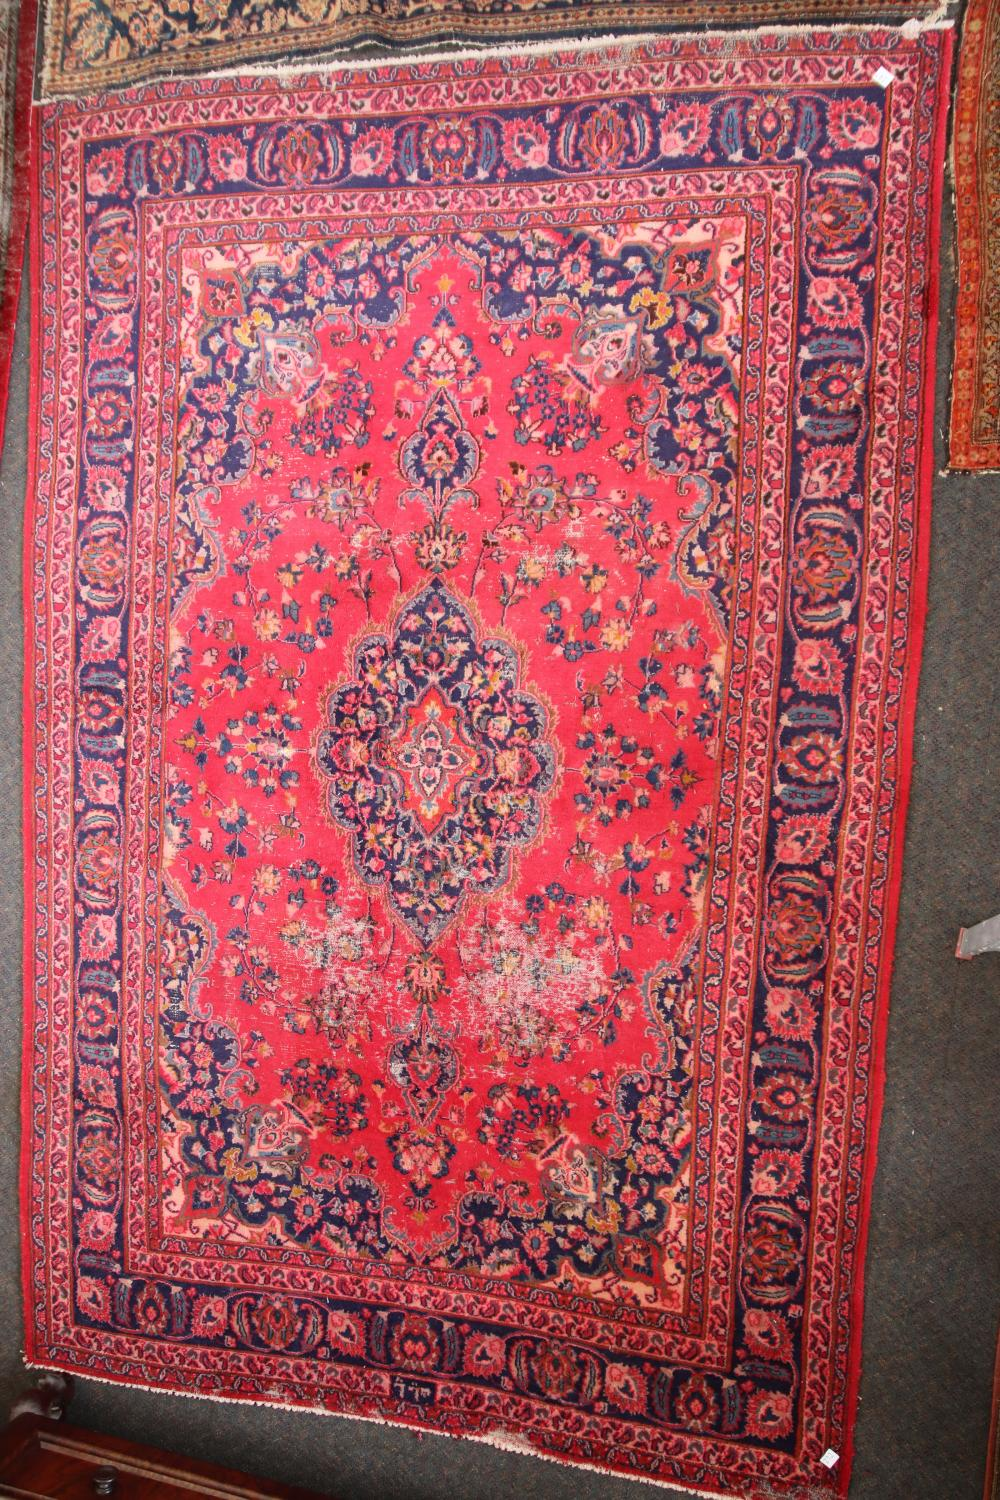 LARGE ANTIQUE HAND KNOTTED WOOL FLOOR RUG, RED AND BLUE AND MEDALLION AND BORDER PATTERN, MEASURES 190CM X 290CM (WEAR AND DYE RUNNING)